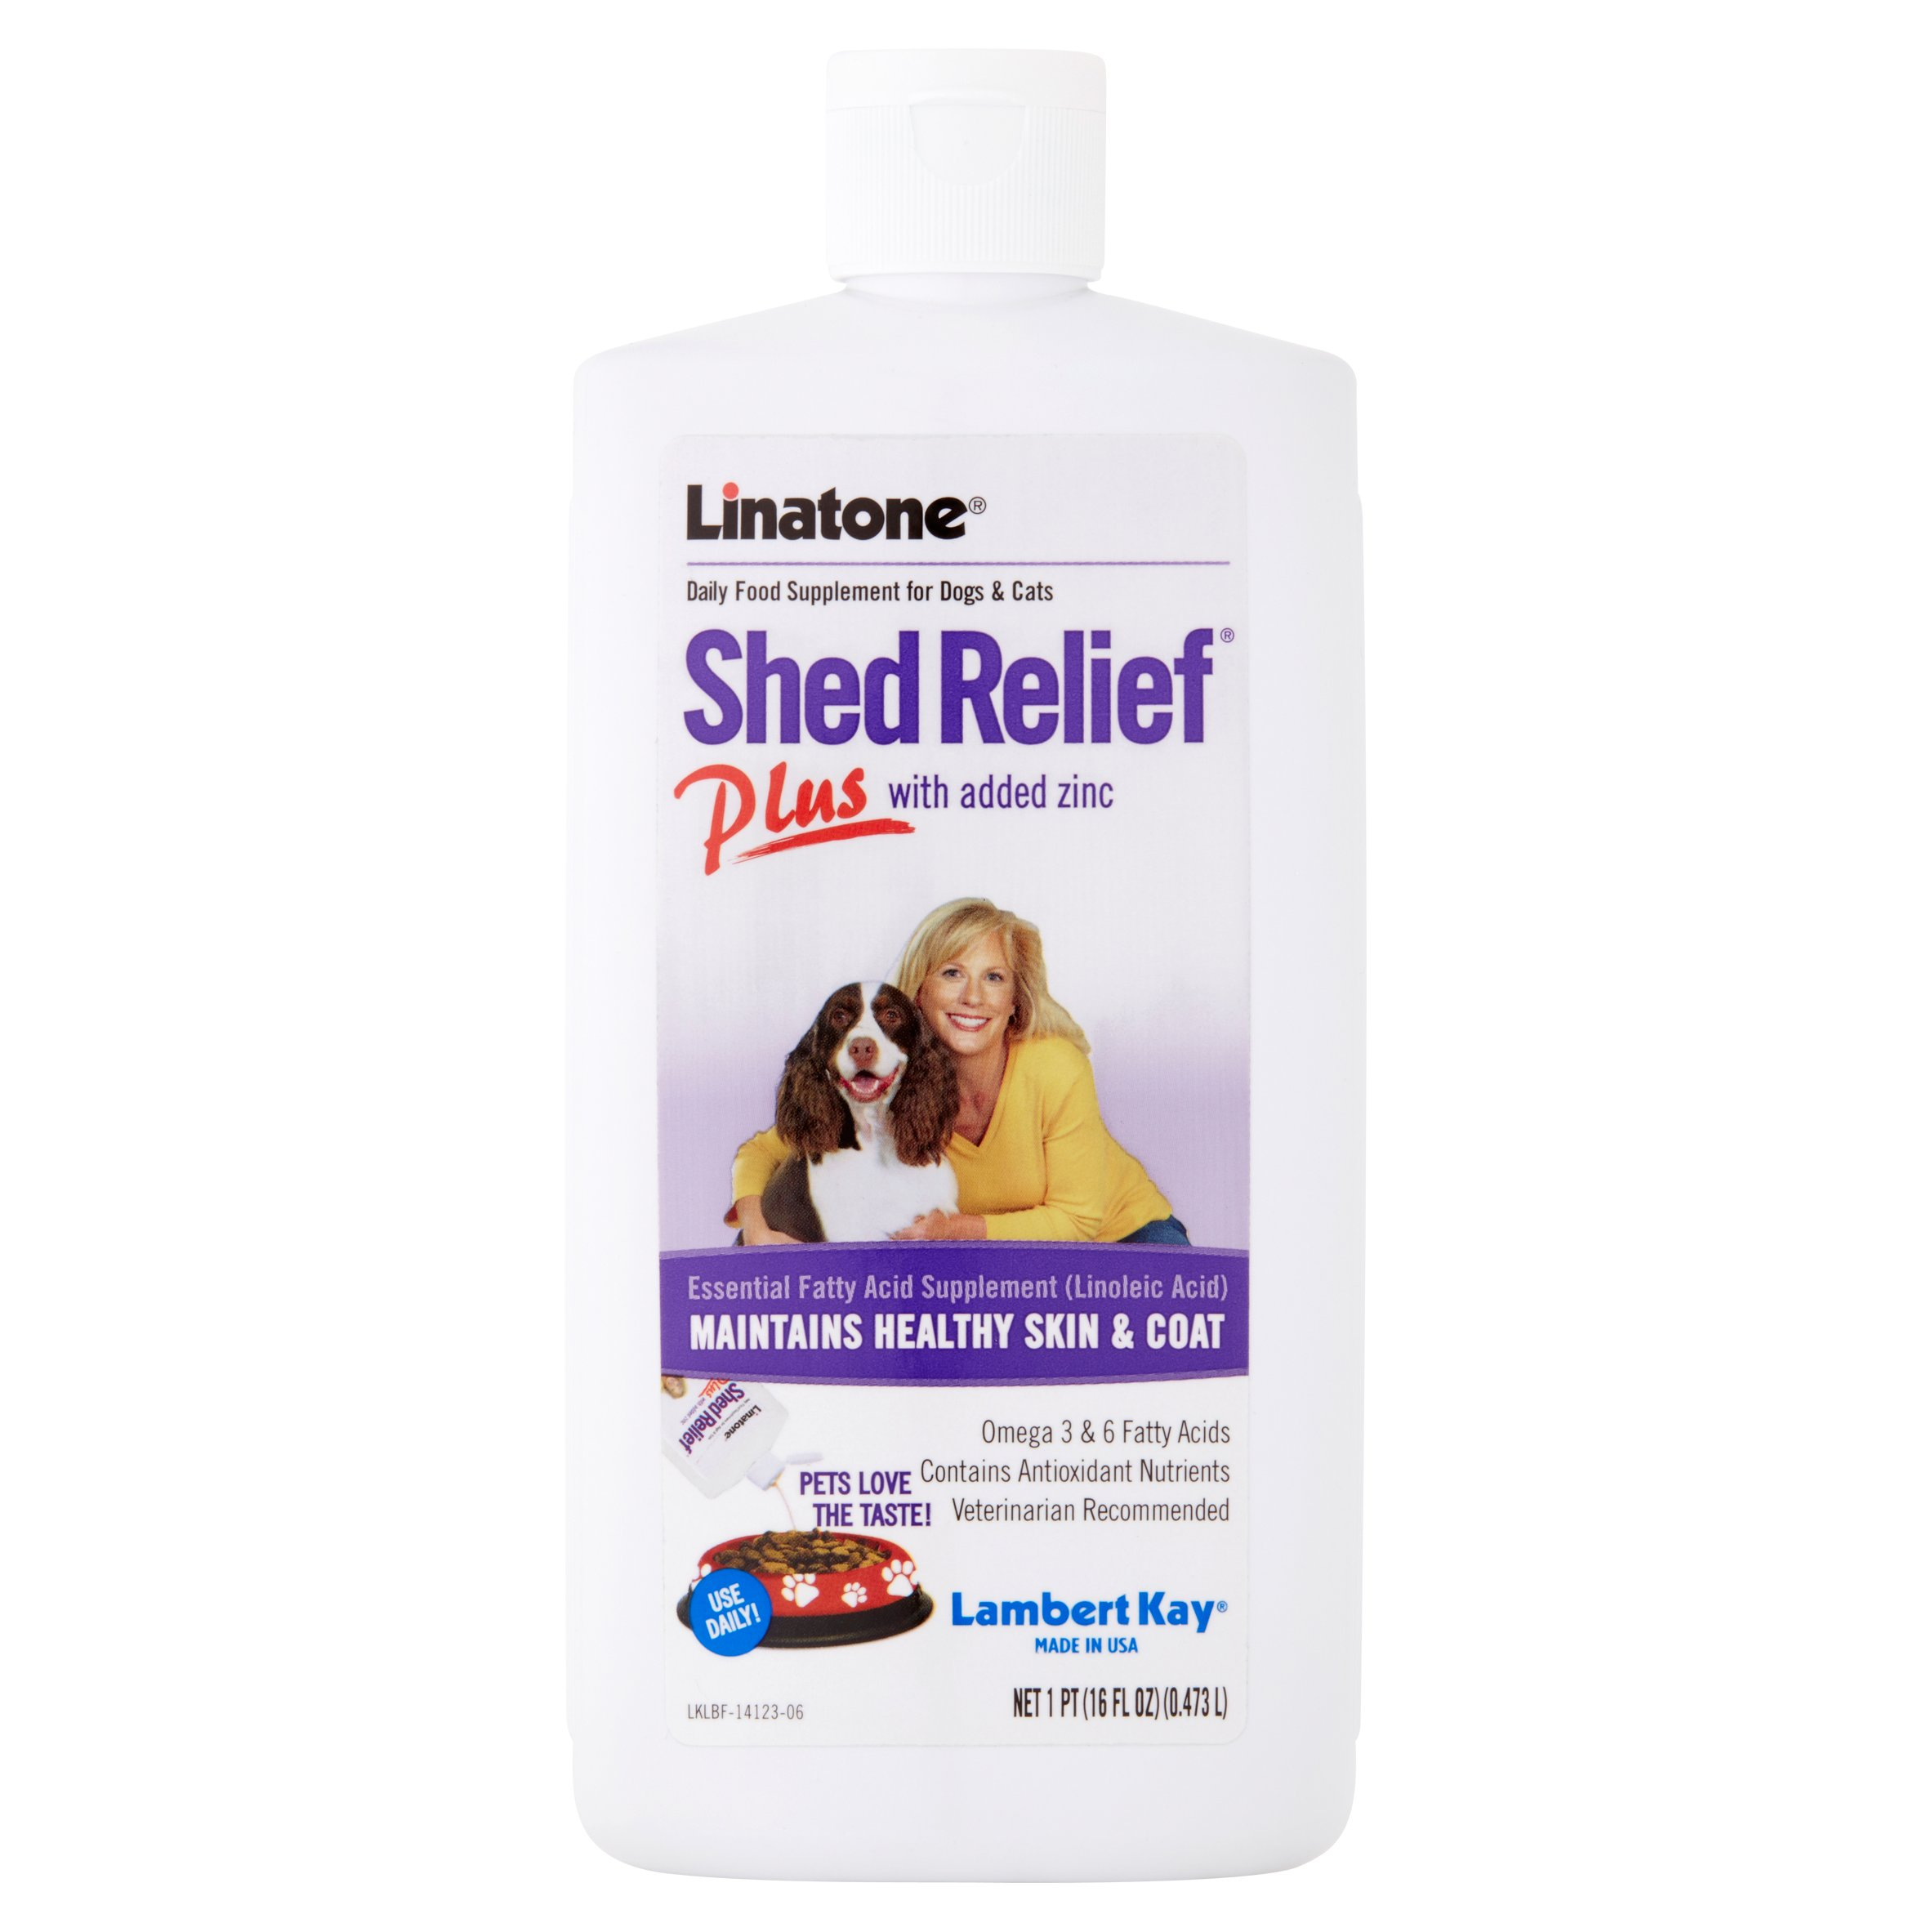 Lambert Kay Linatone Shed Relief Plus for Dogs & Cats, 16 oz.